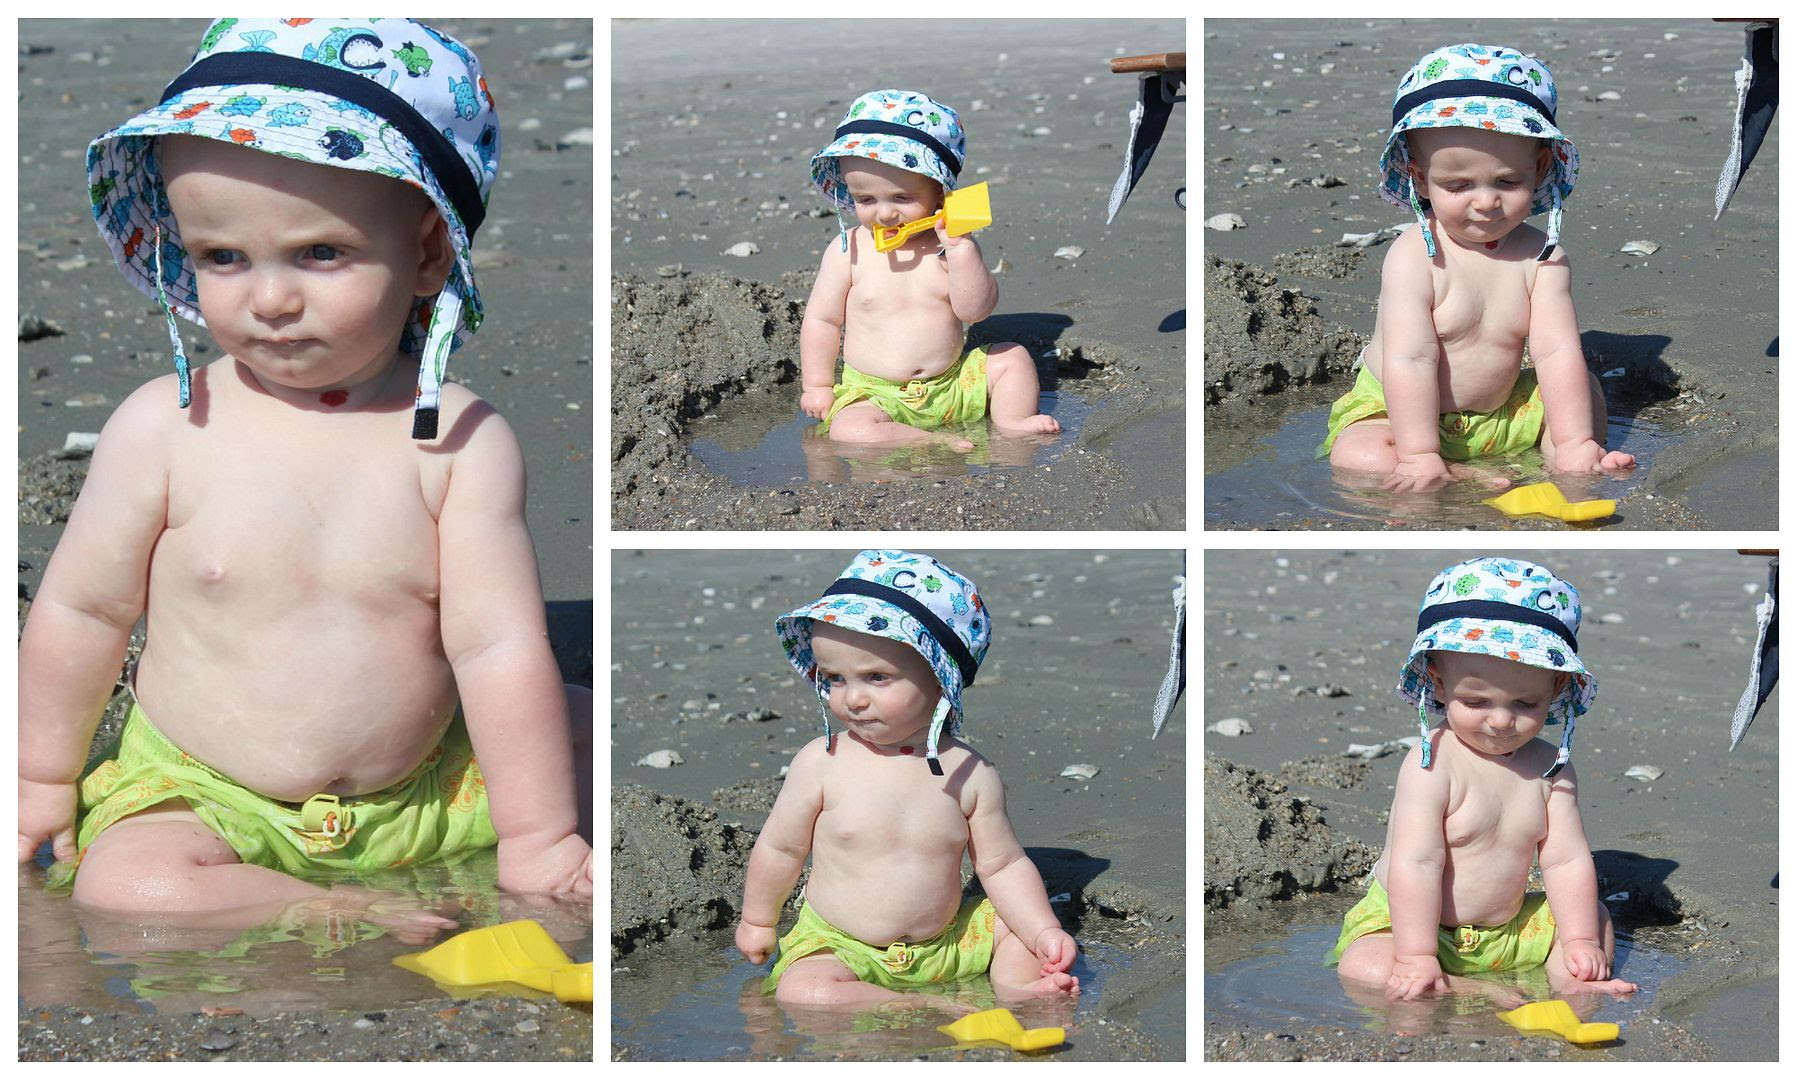 photo beach.collage14_zpststgx5jk.jpg